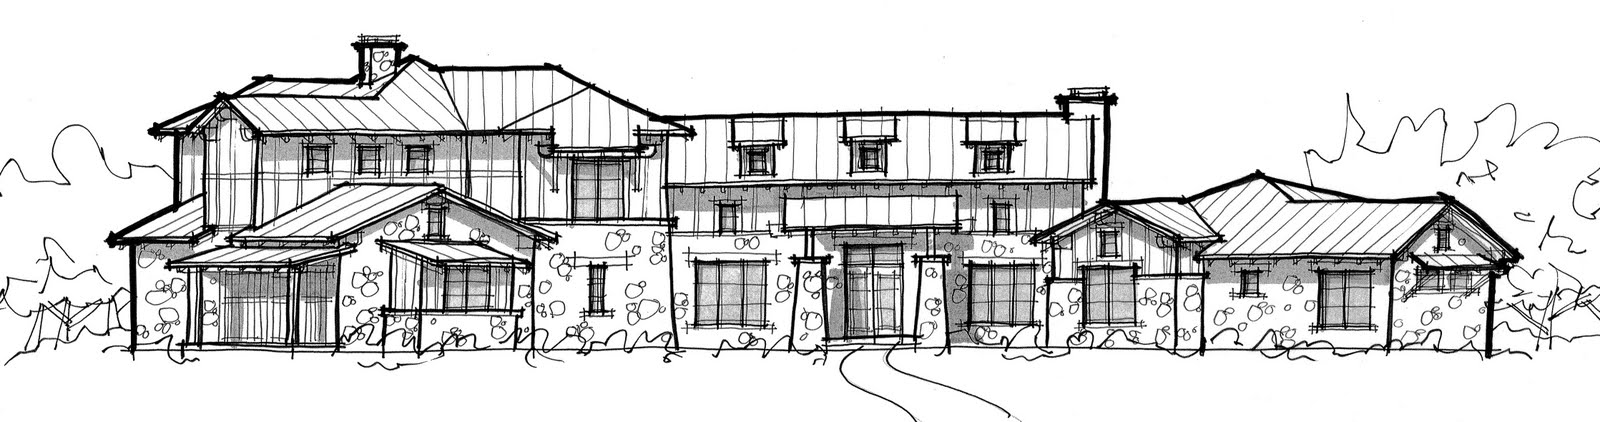 Choice house plans 6000 square feet made by wood for 6000 square foot house plans